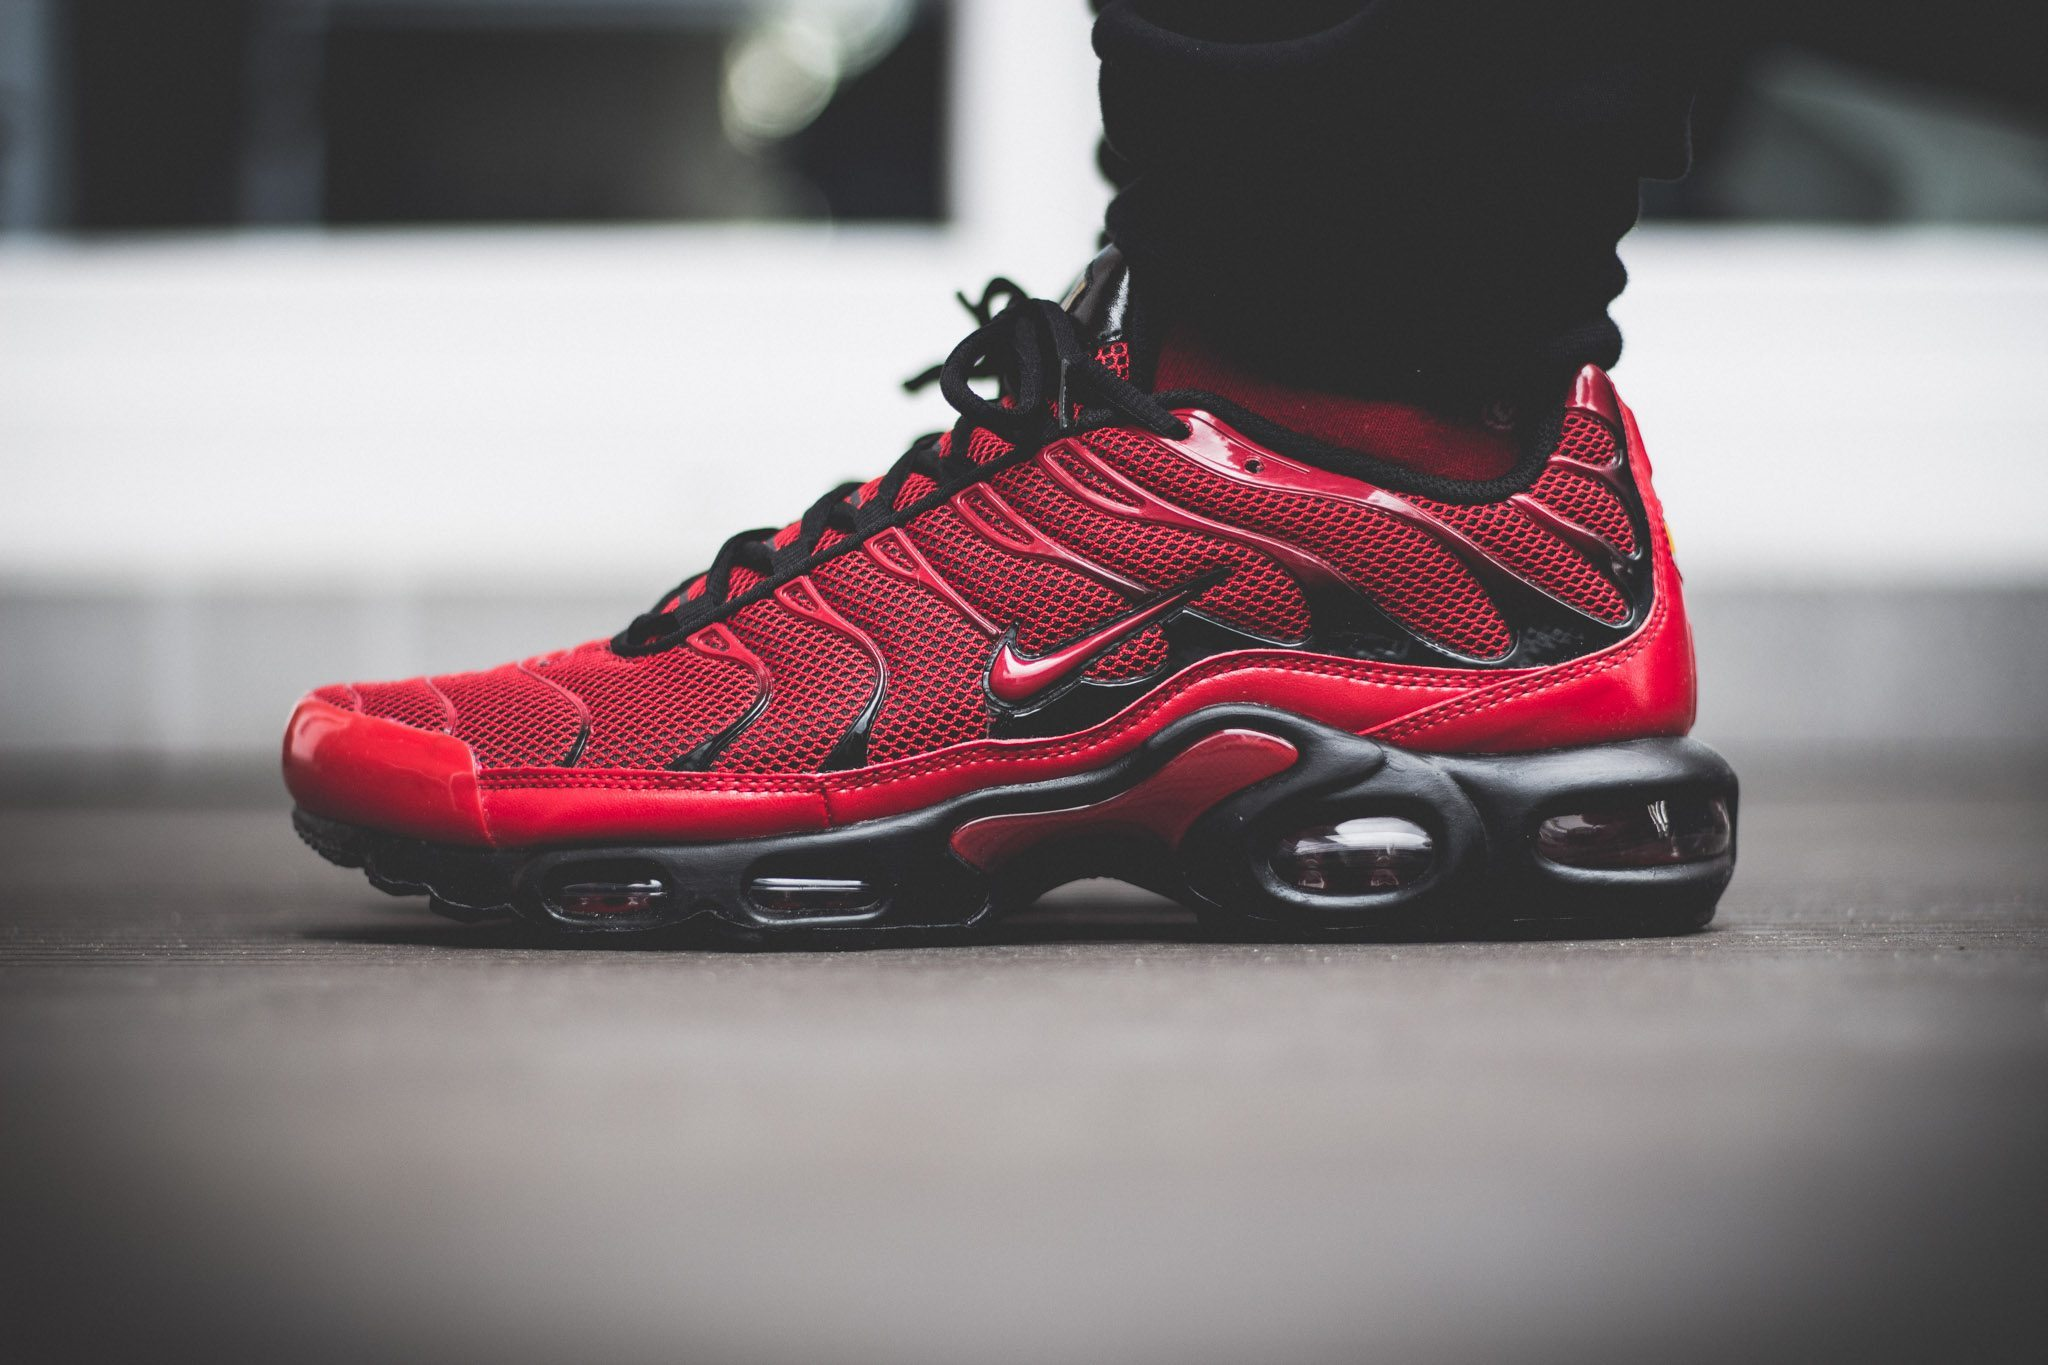 Nike Tuned 1 Red On Feet 6